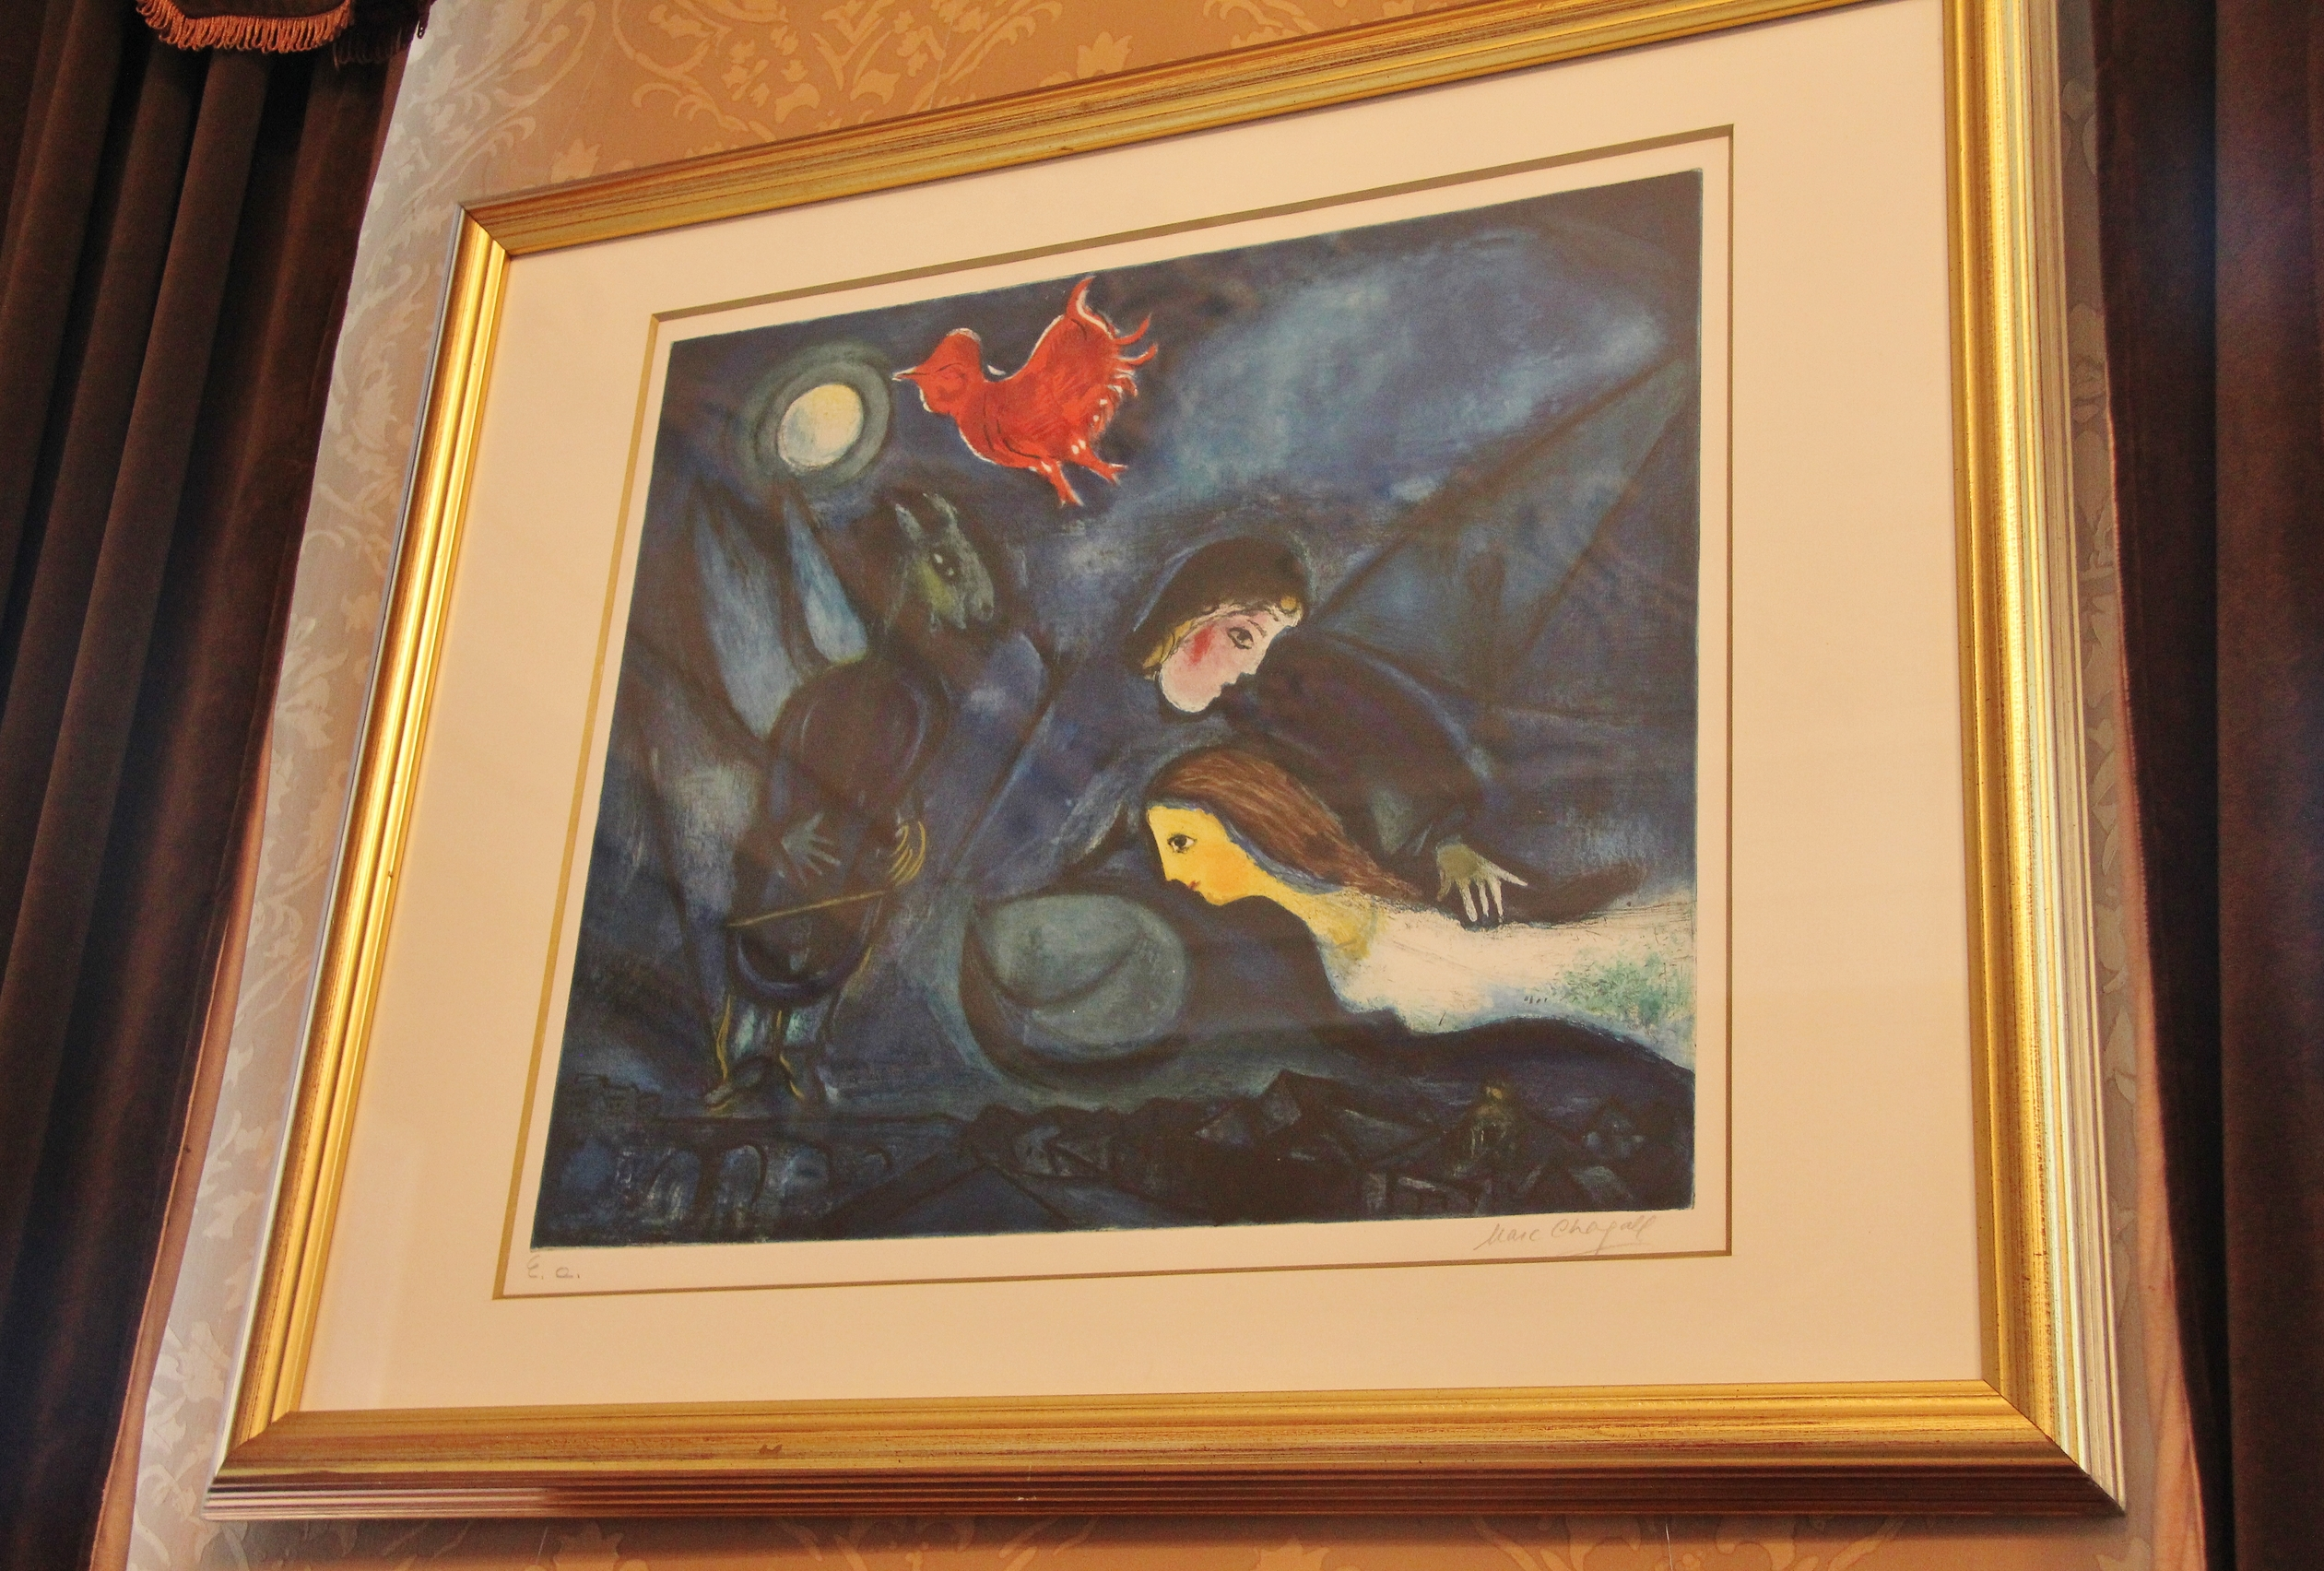 Chagall painting inside the History of Lodz Museum